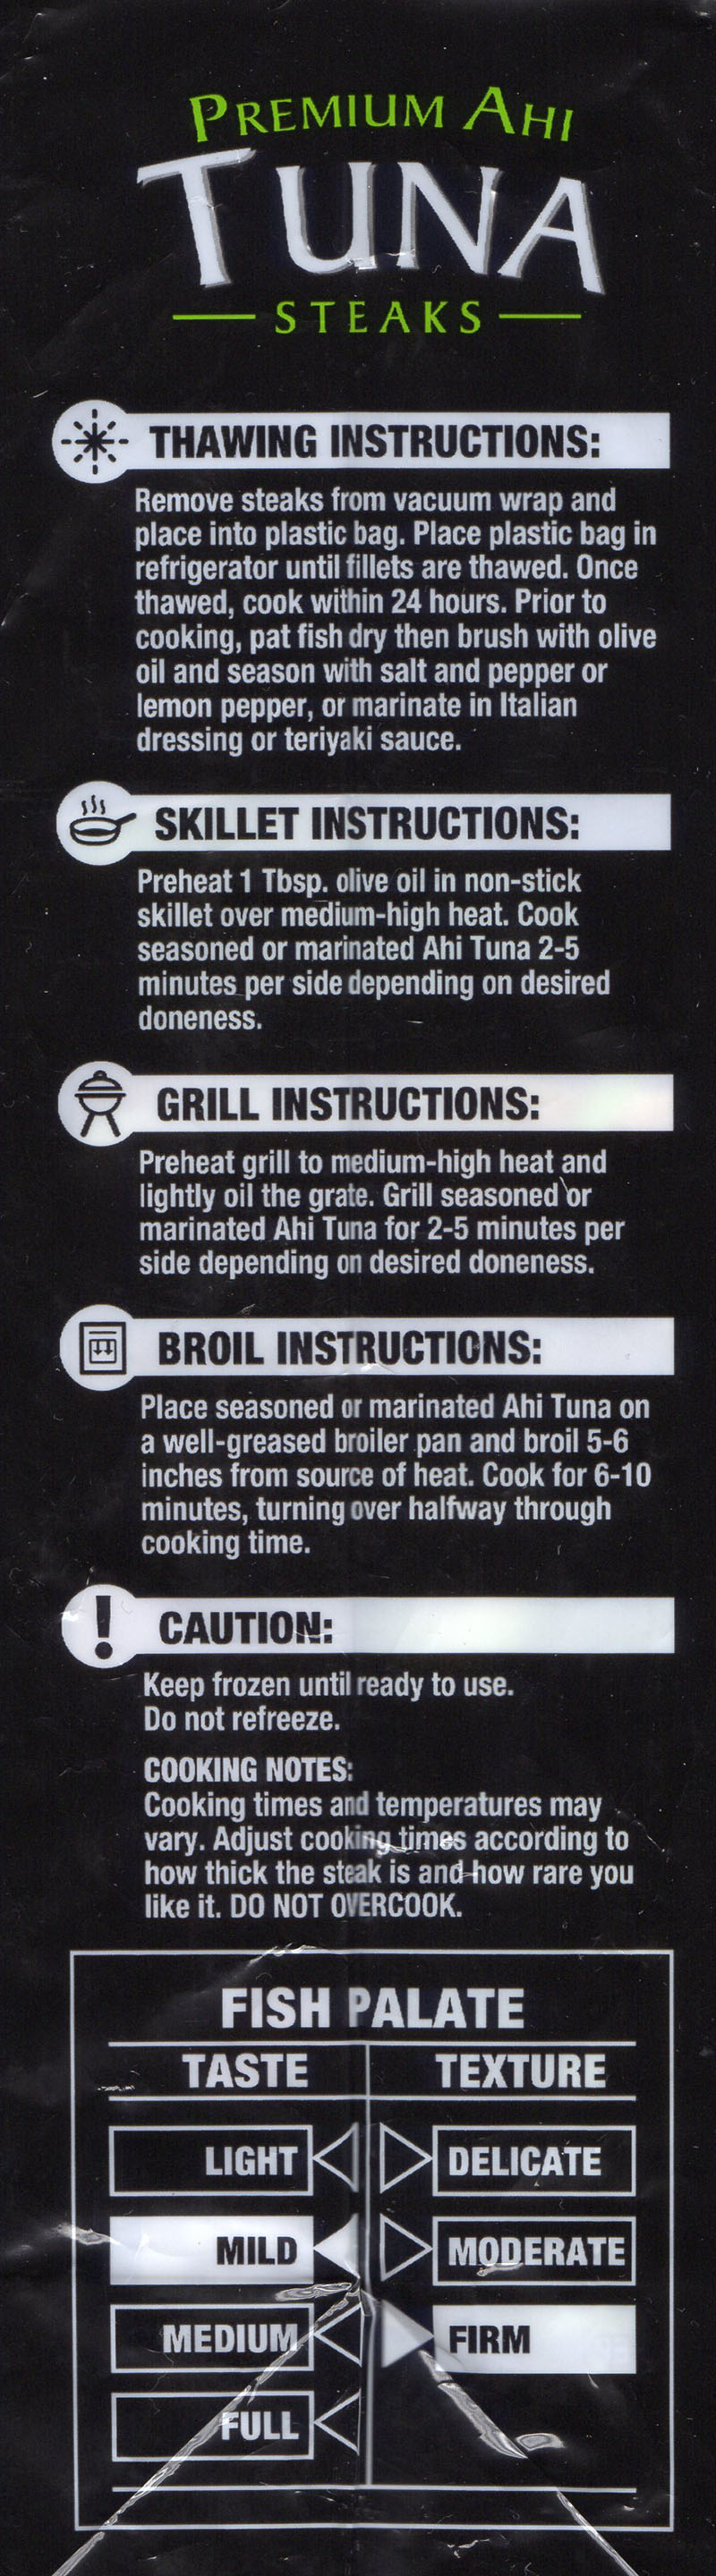 Walmart Premium Ahi Tuna Steaks defrosting and cooking instructions